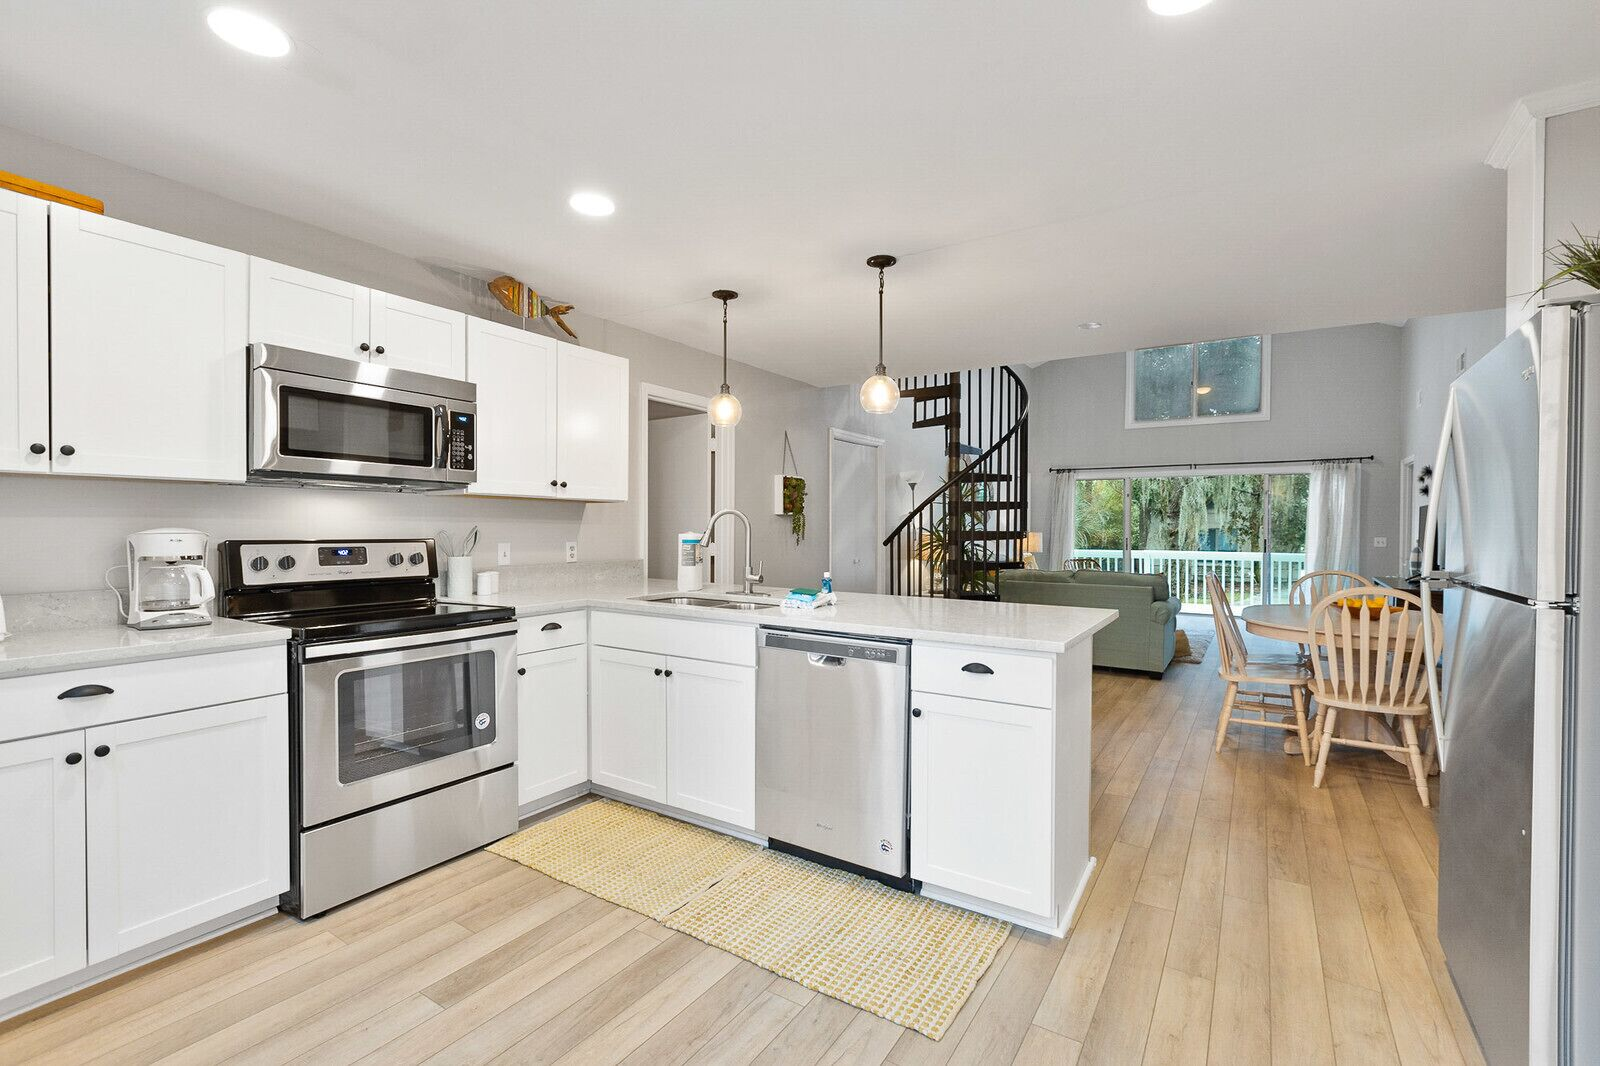 Picture of: 2nd Row Newly Remodeled 4 Bed Bath Beach House Pet Friendly With Private Pool Hilton Head Island Usa Expedia Dk